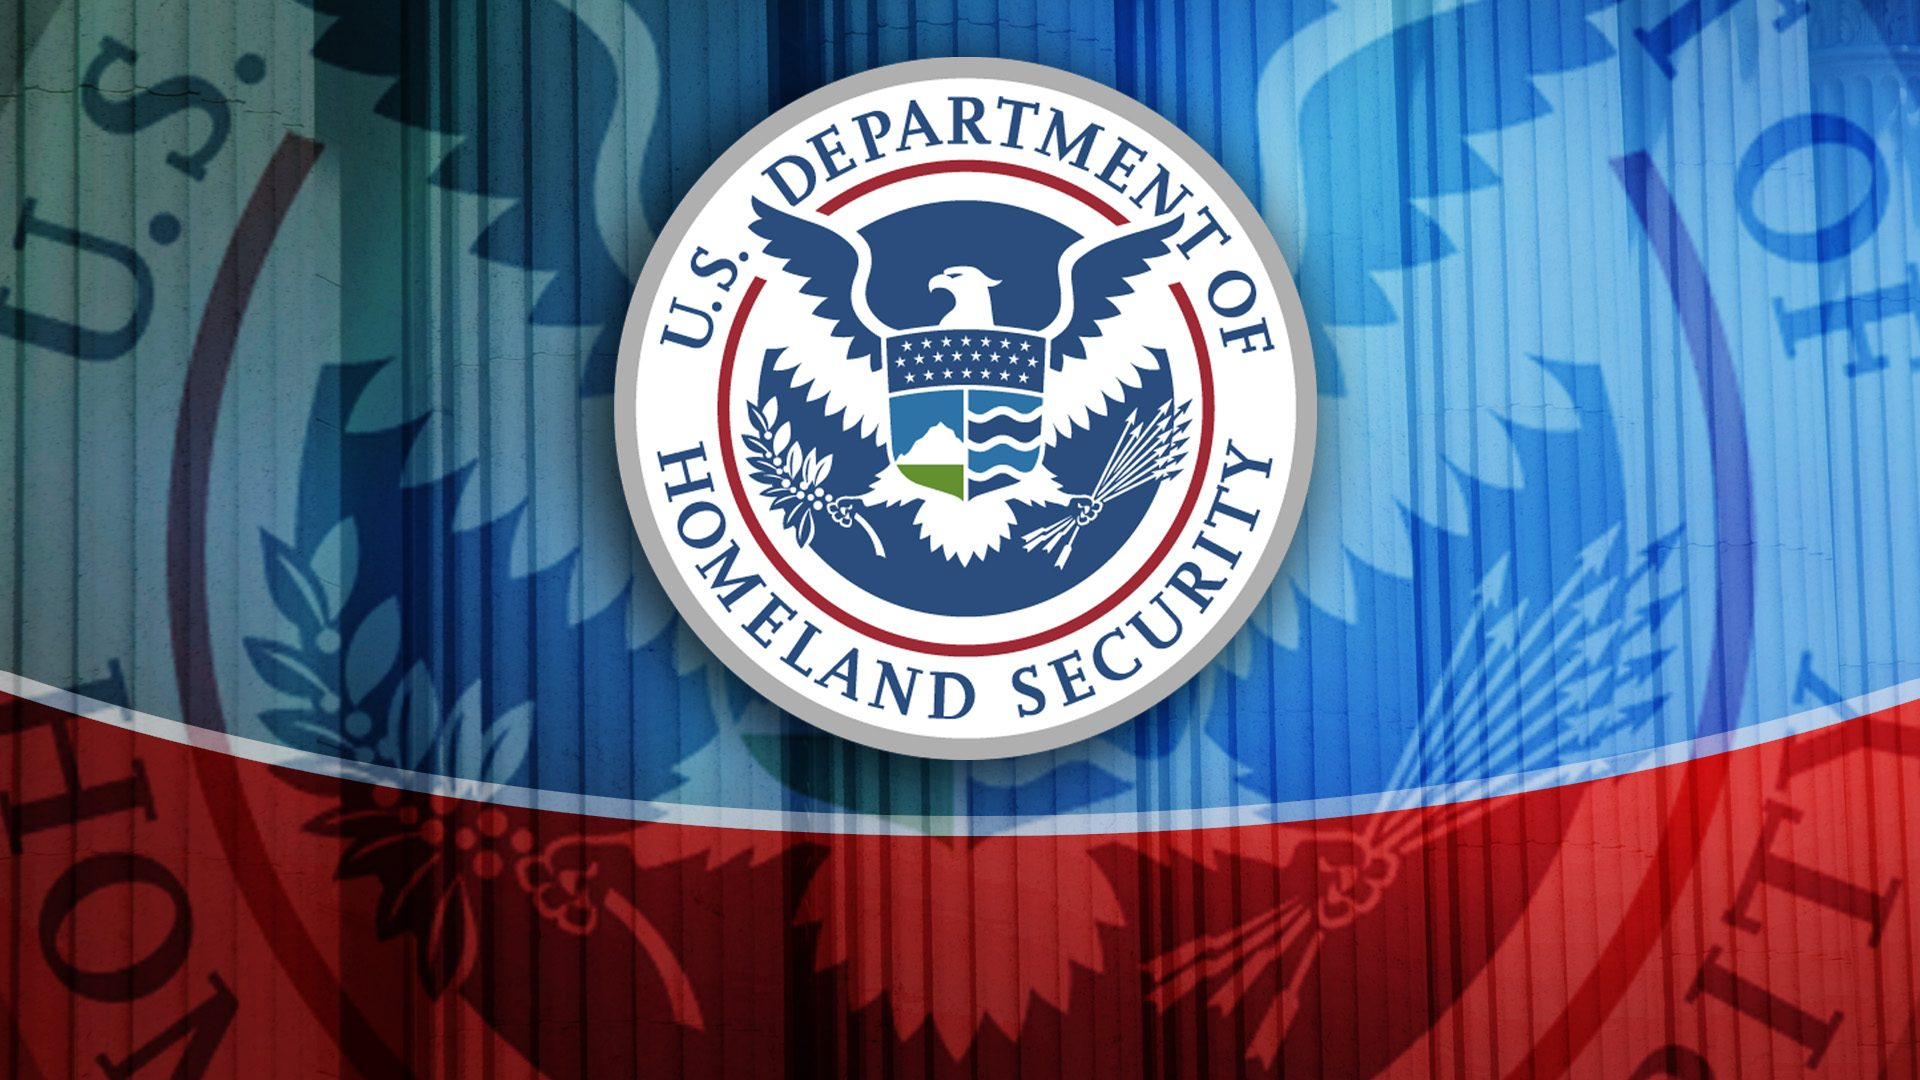 essay on department of homeland security